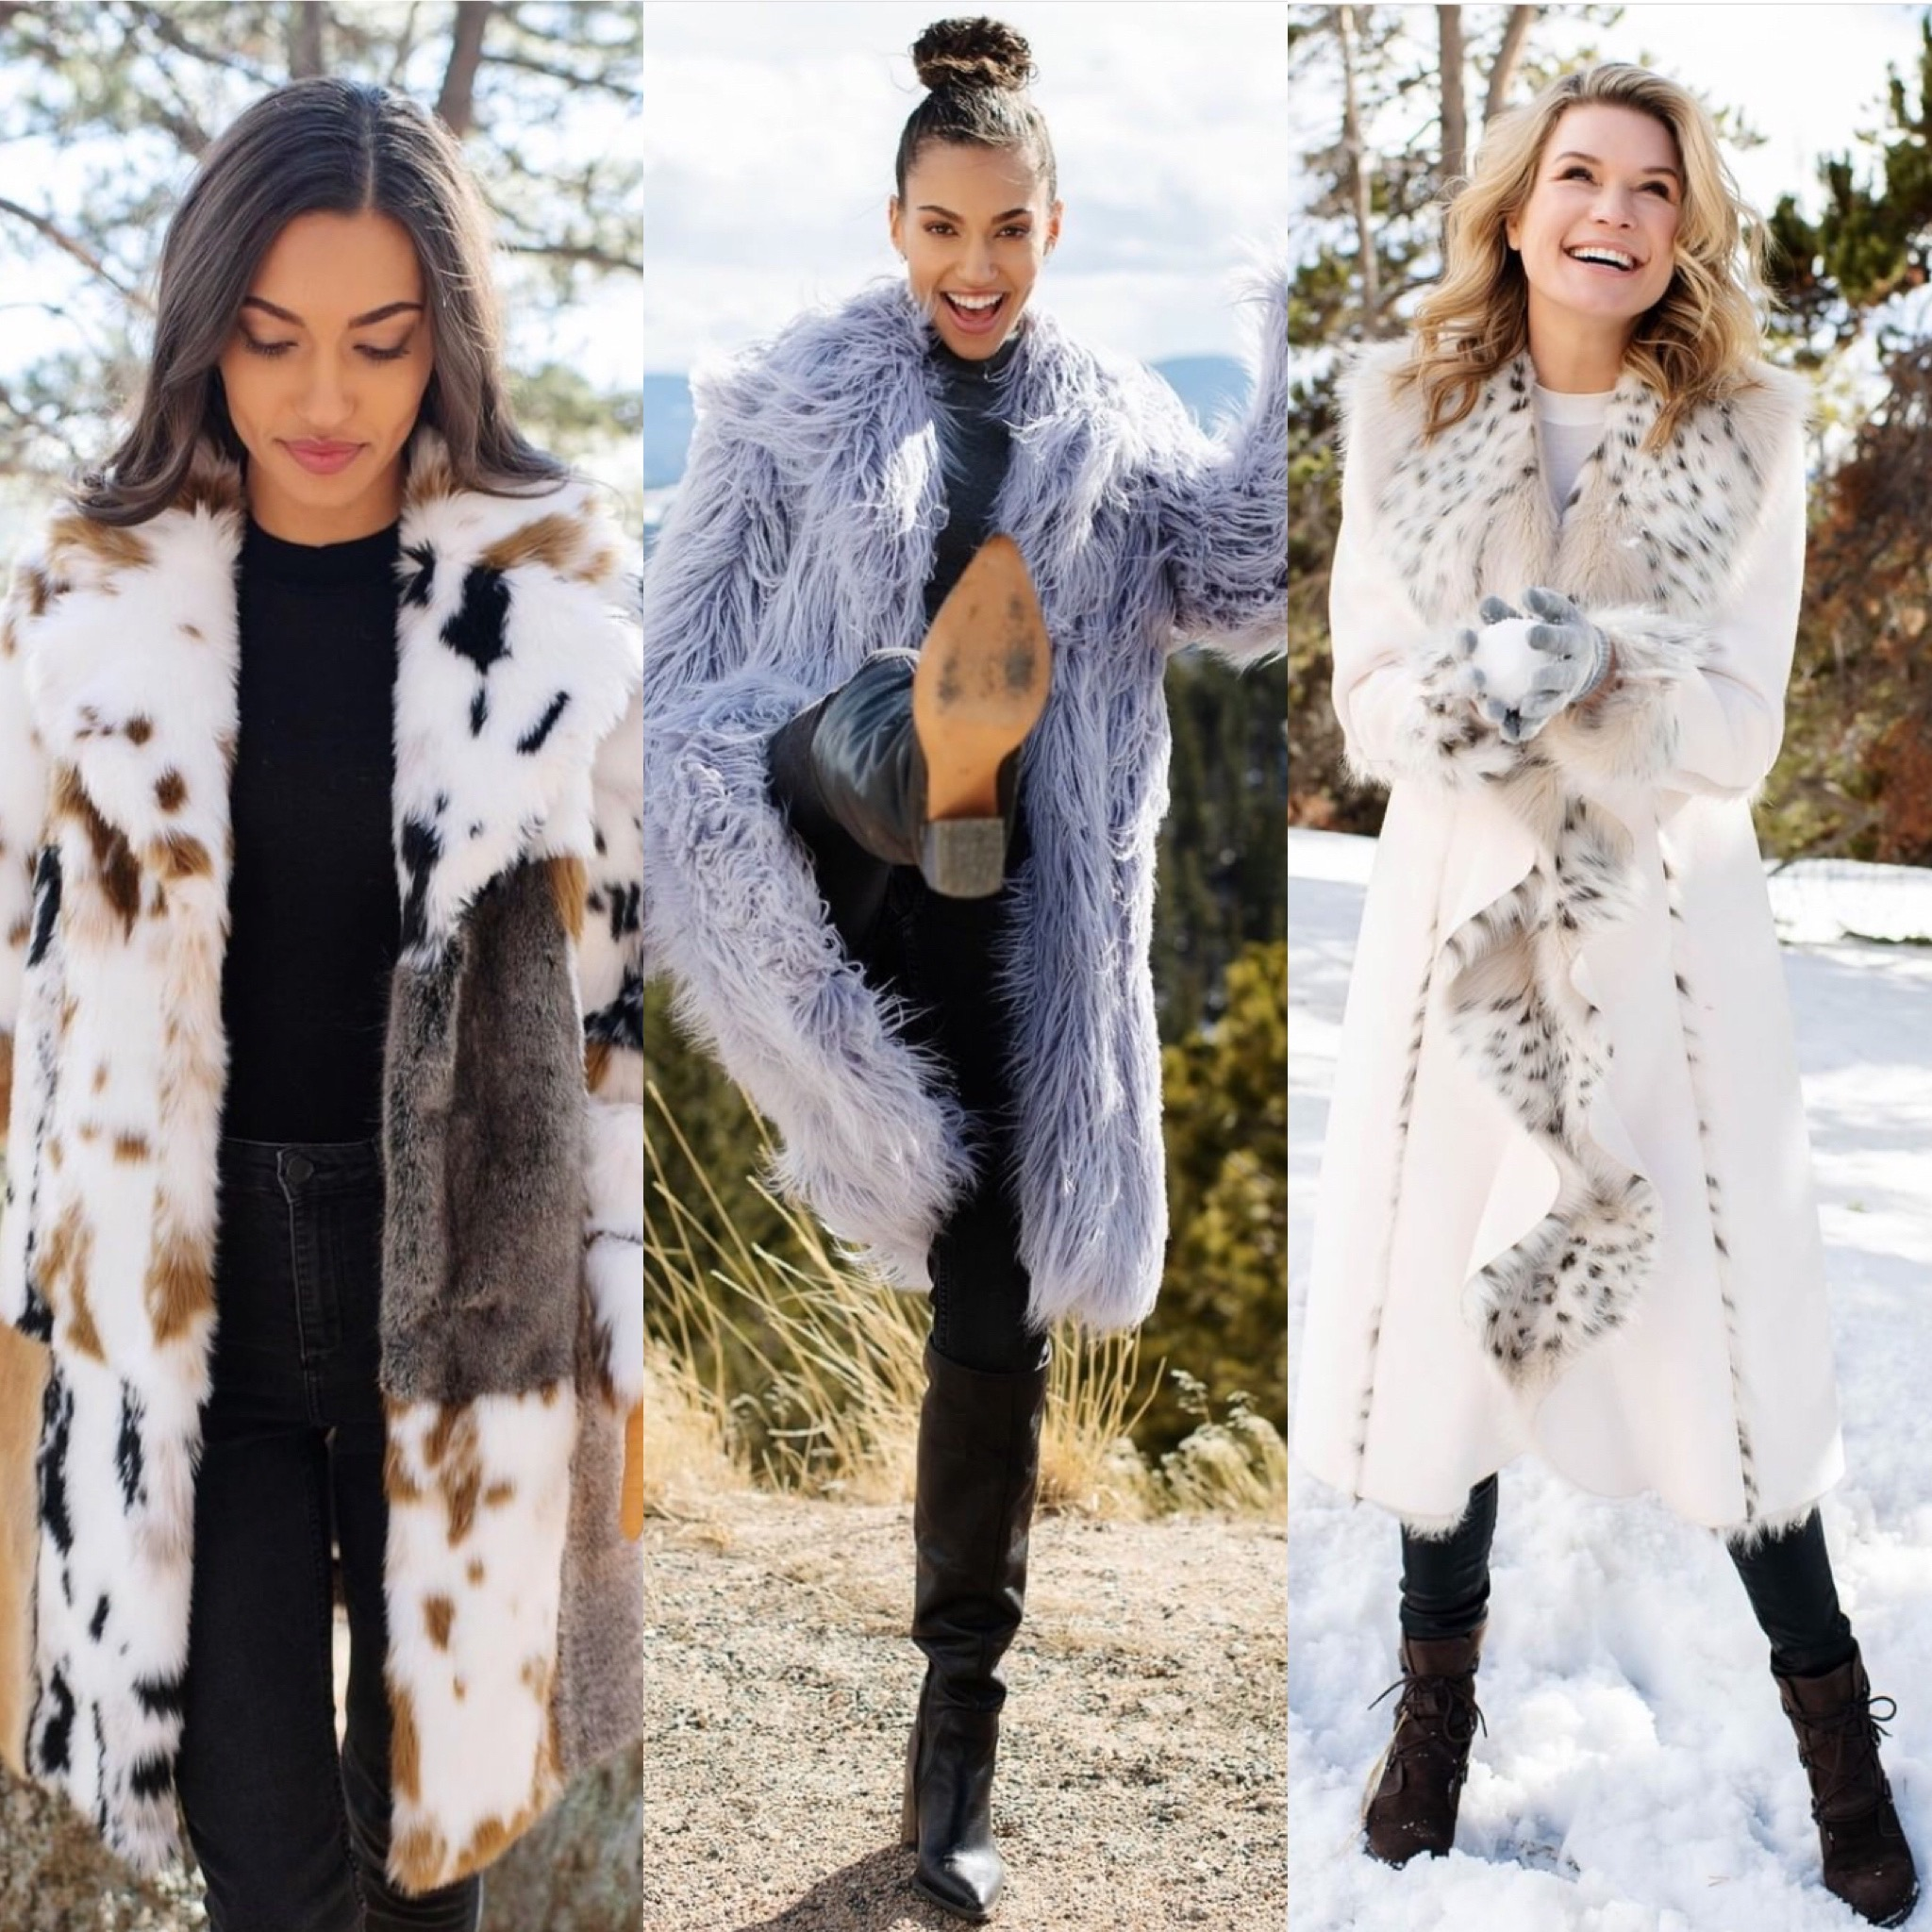 Photoshoot for Fabulous Furs a Faux fur company